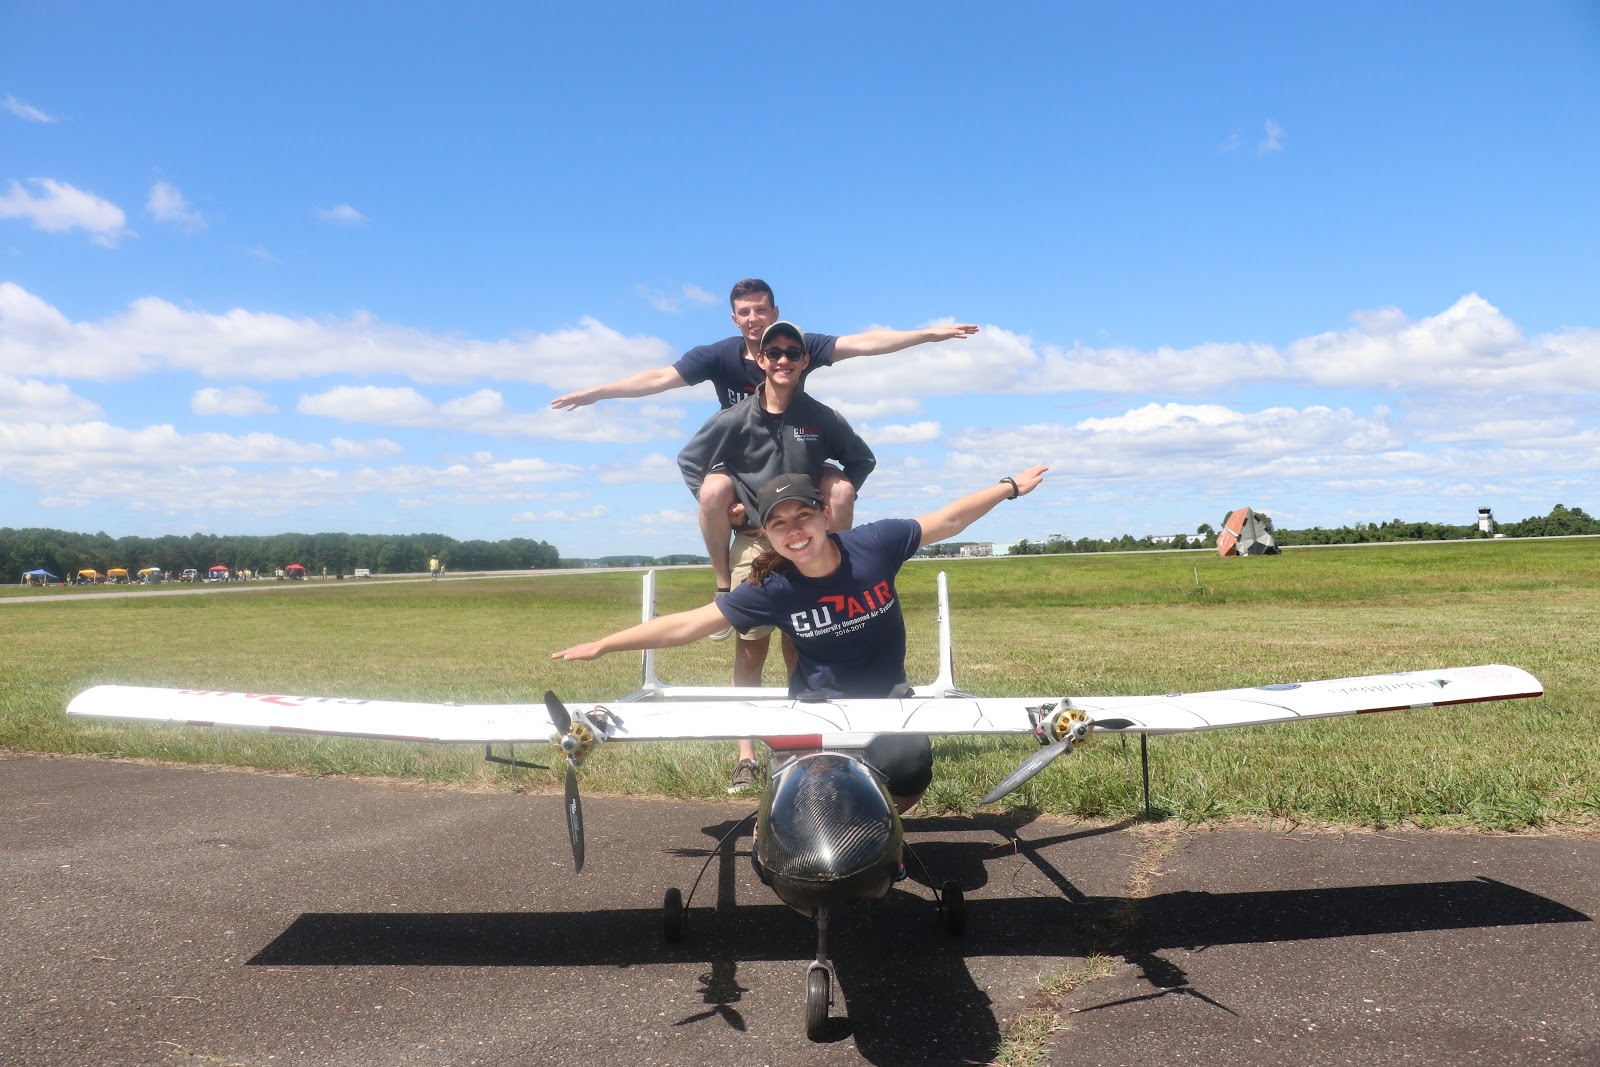 CUAir_Members of the CUAir team with their autonomous unmanned aircraft